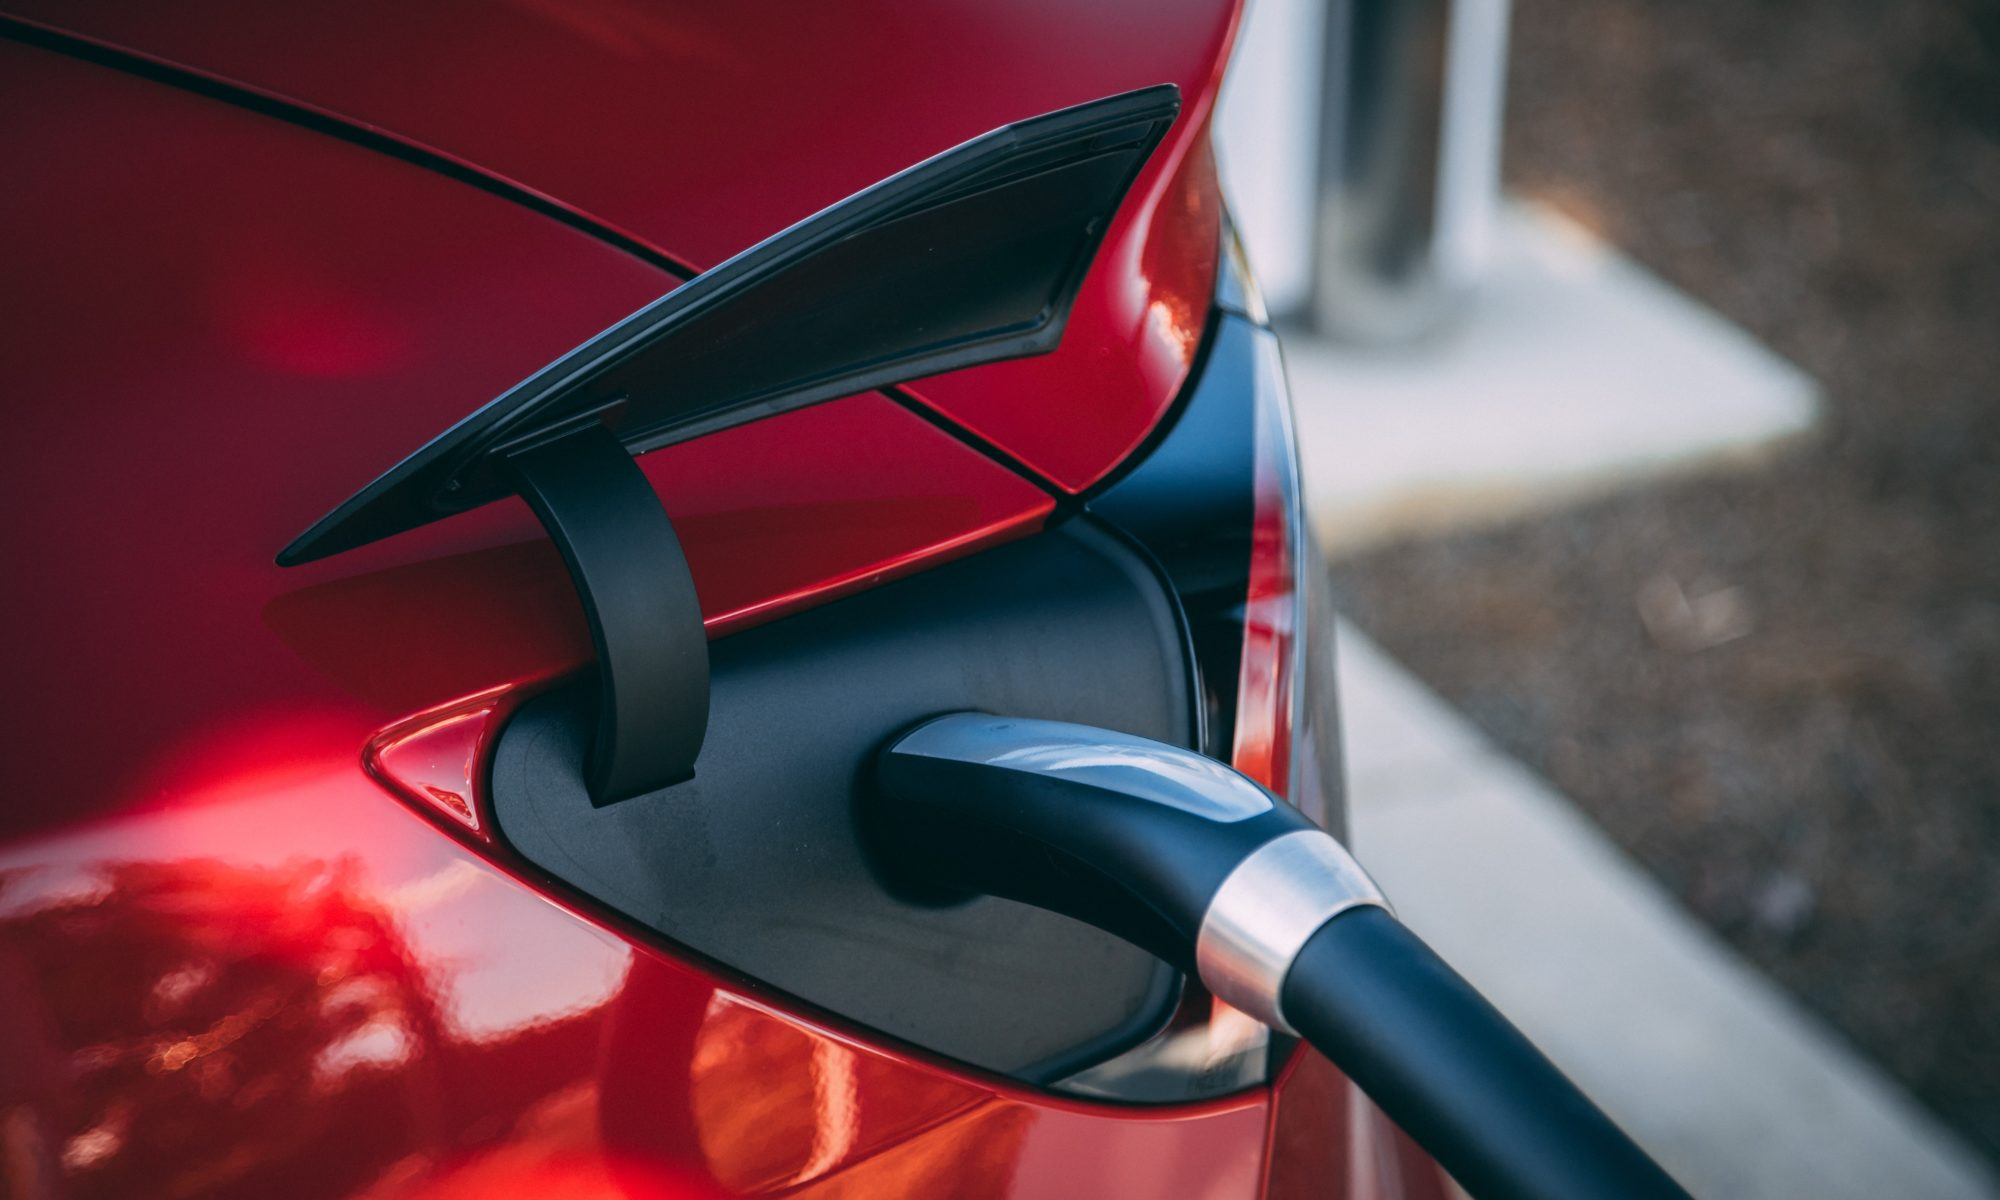 Tesla Model 3 Charging Photo by Vlad Tchompalov on Unsplash